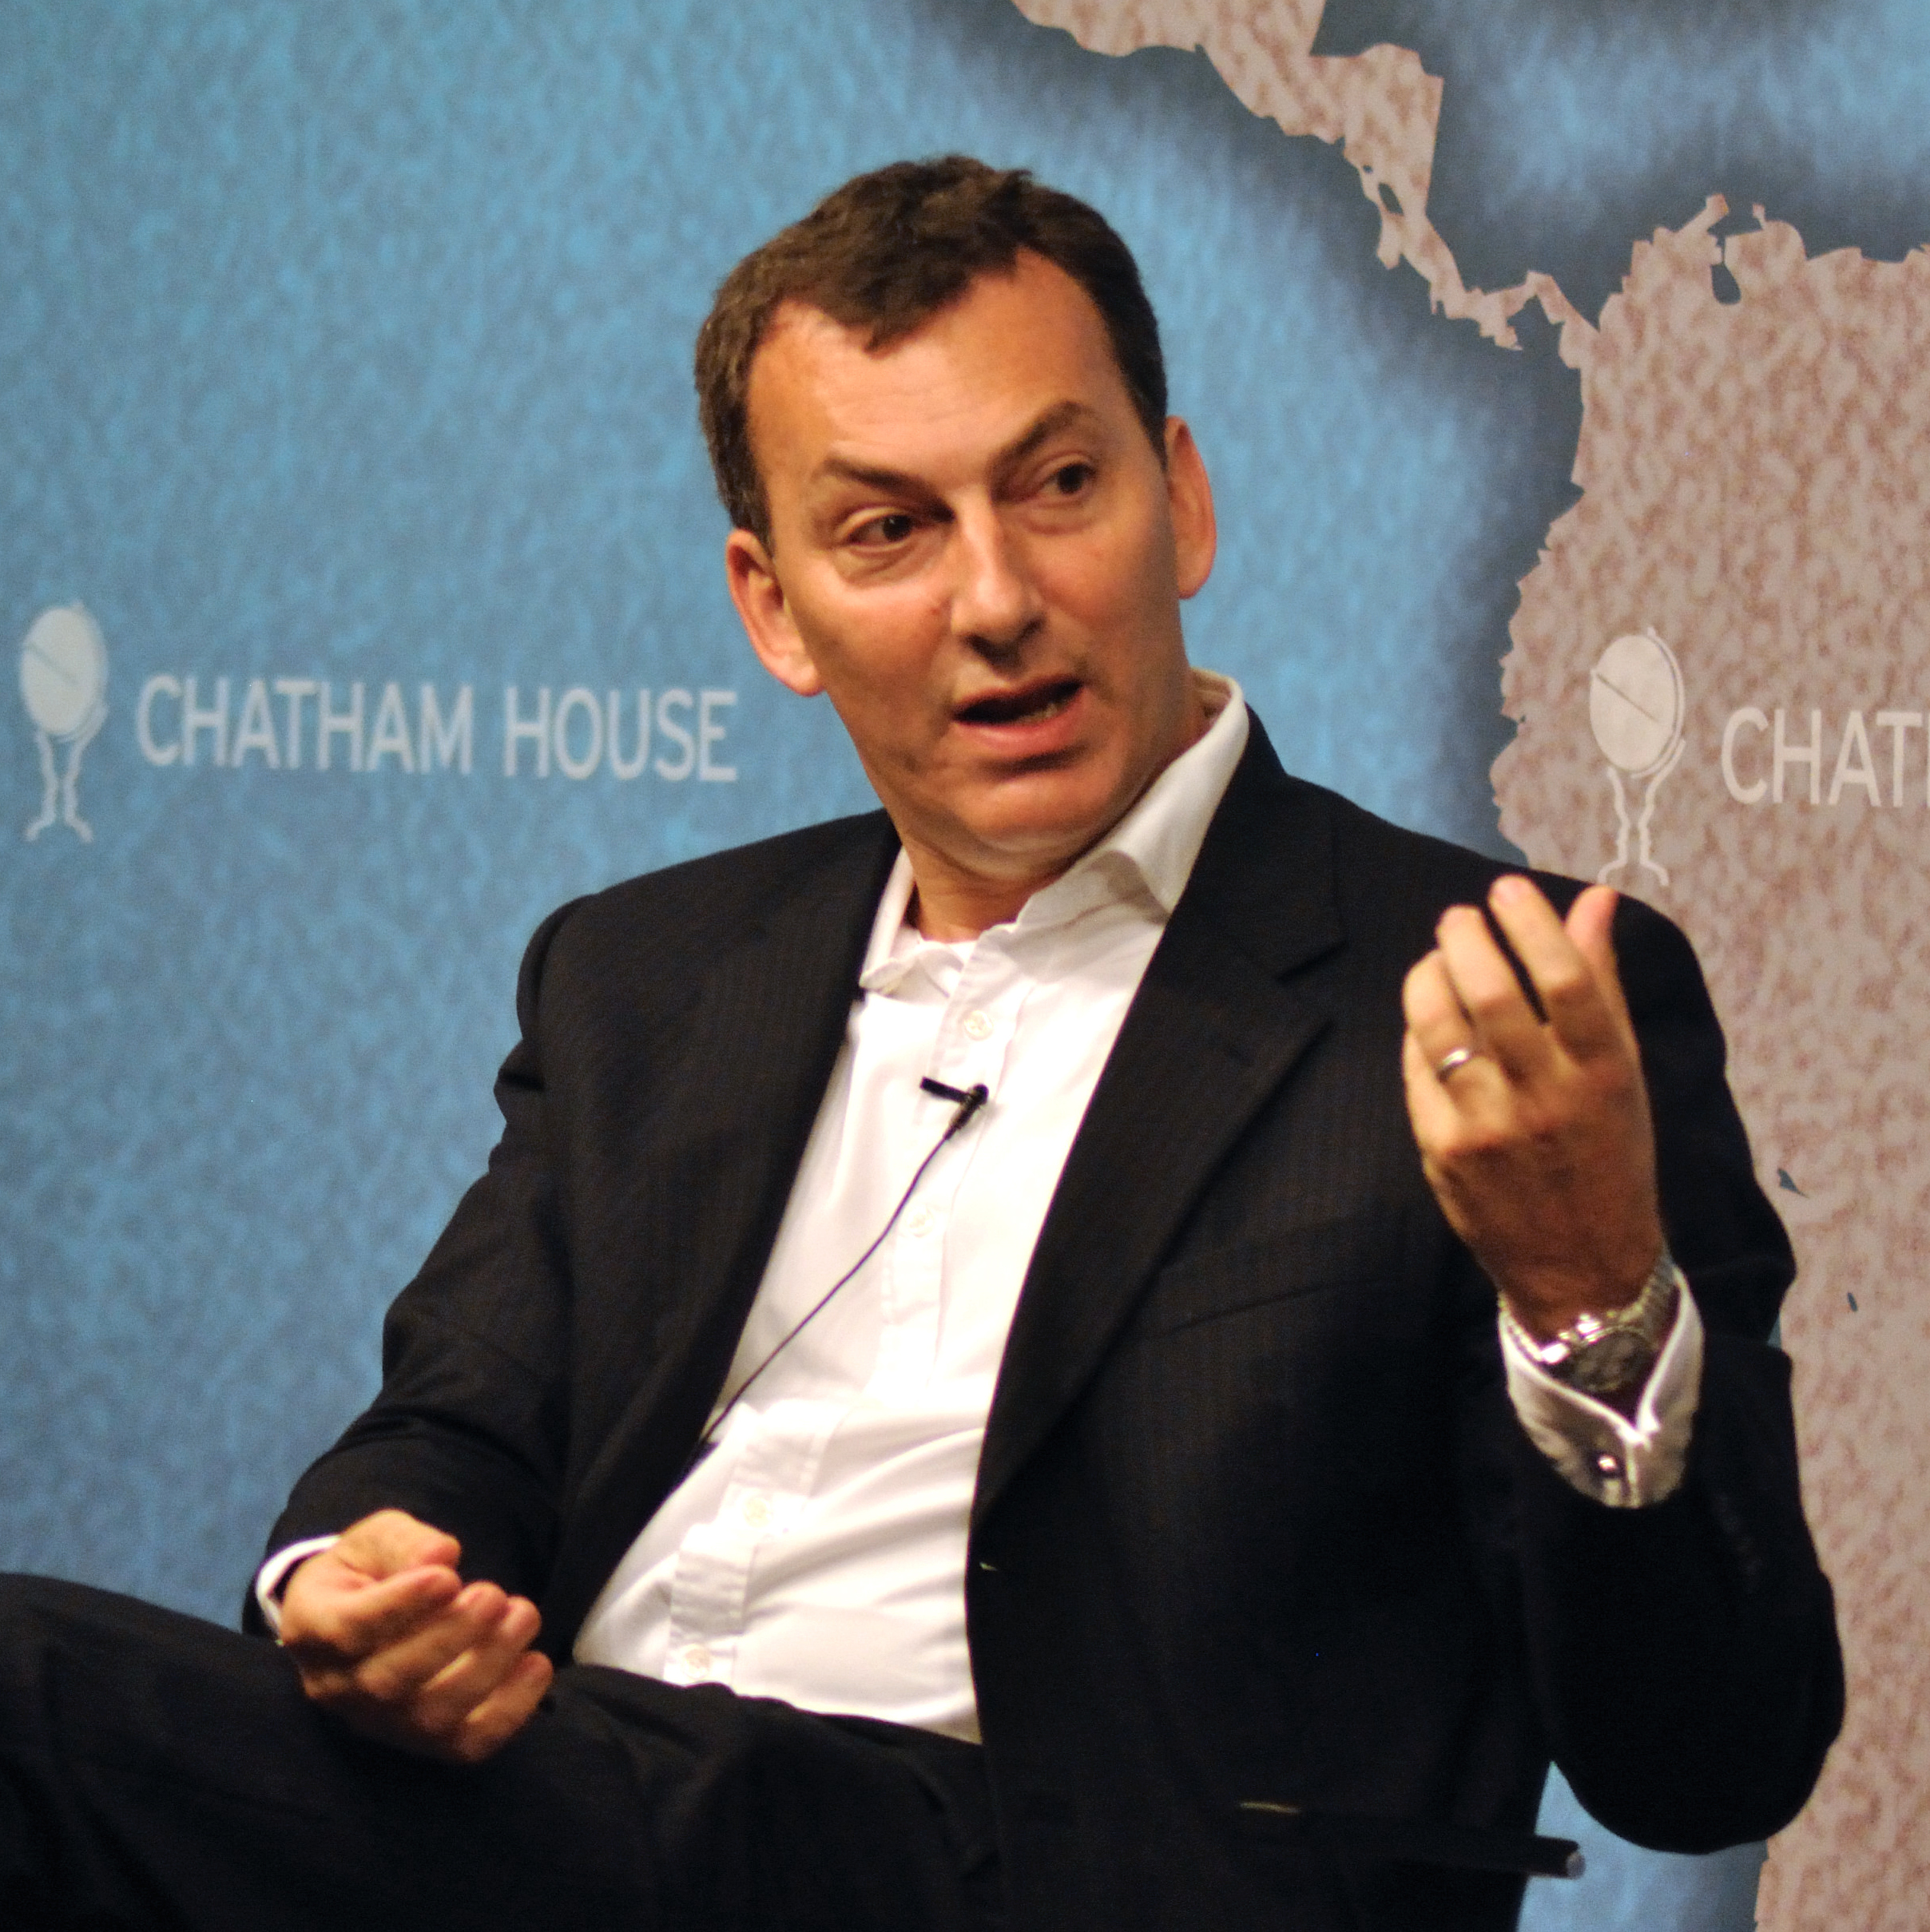 Mark Urban at [[Chatham House]] in 2011